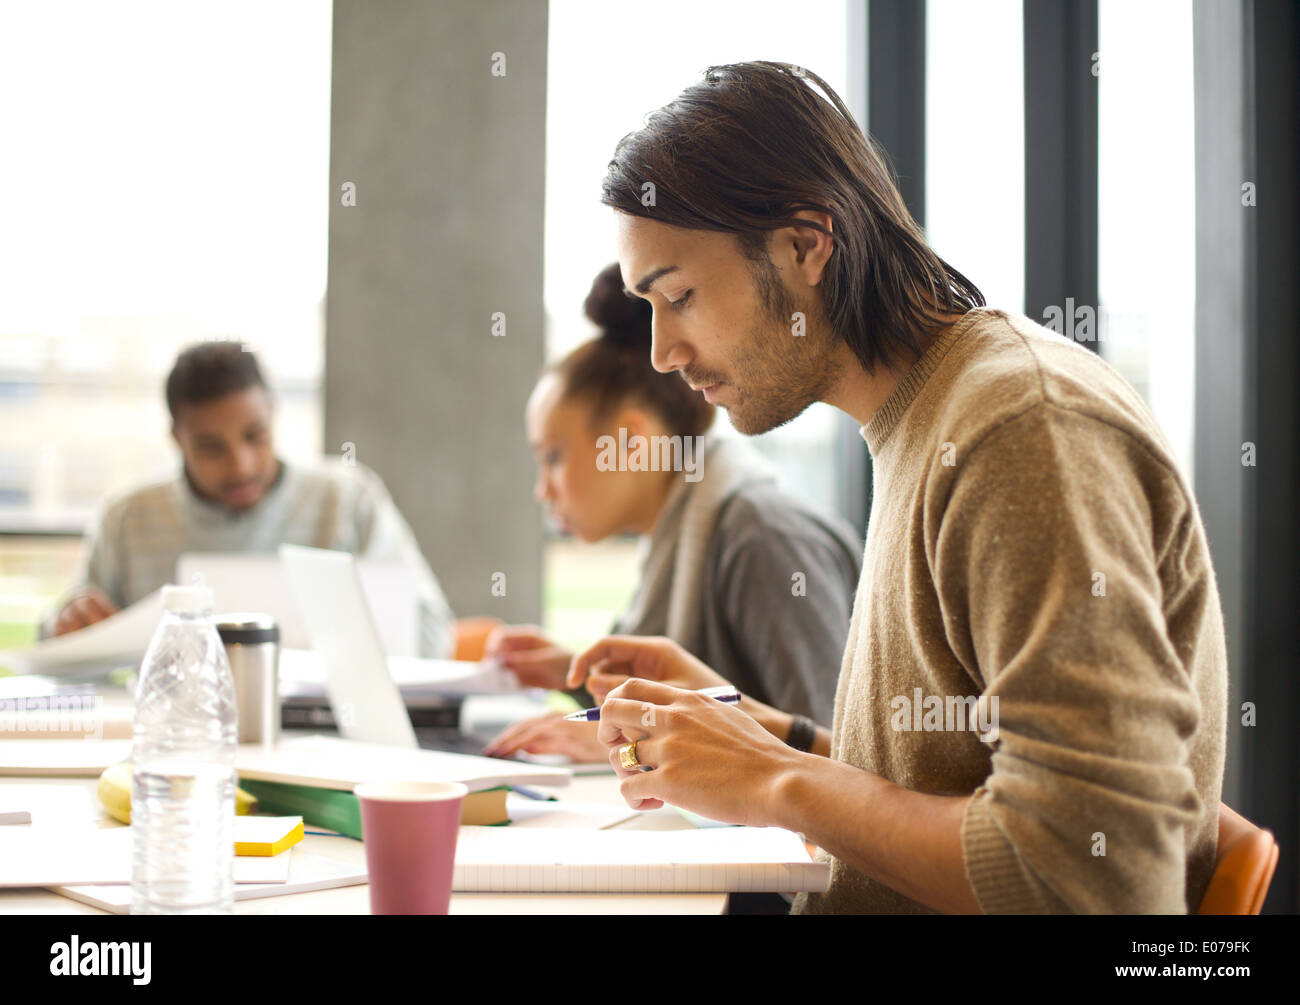 Young man talking notes for study with students studying in background. University students preparing for final exams in library - Stock Image